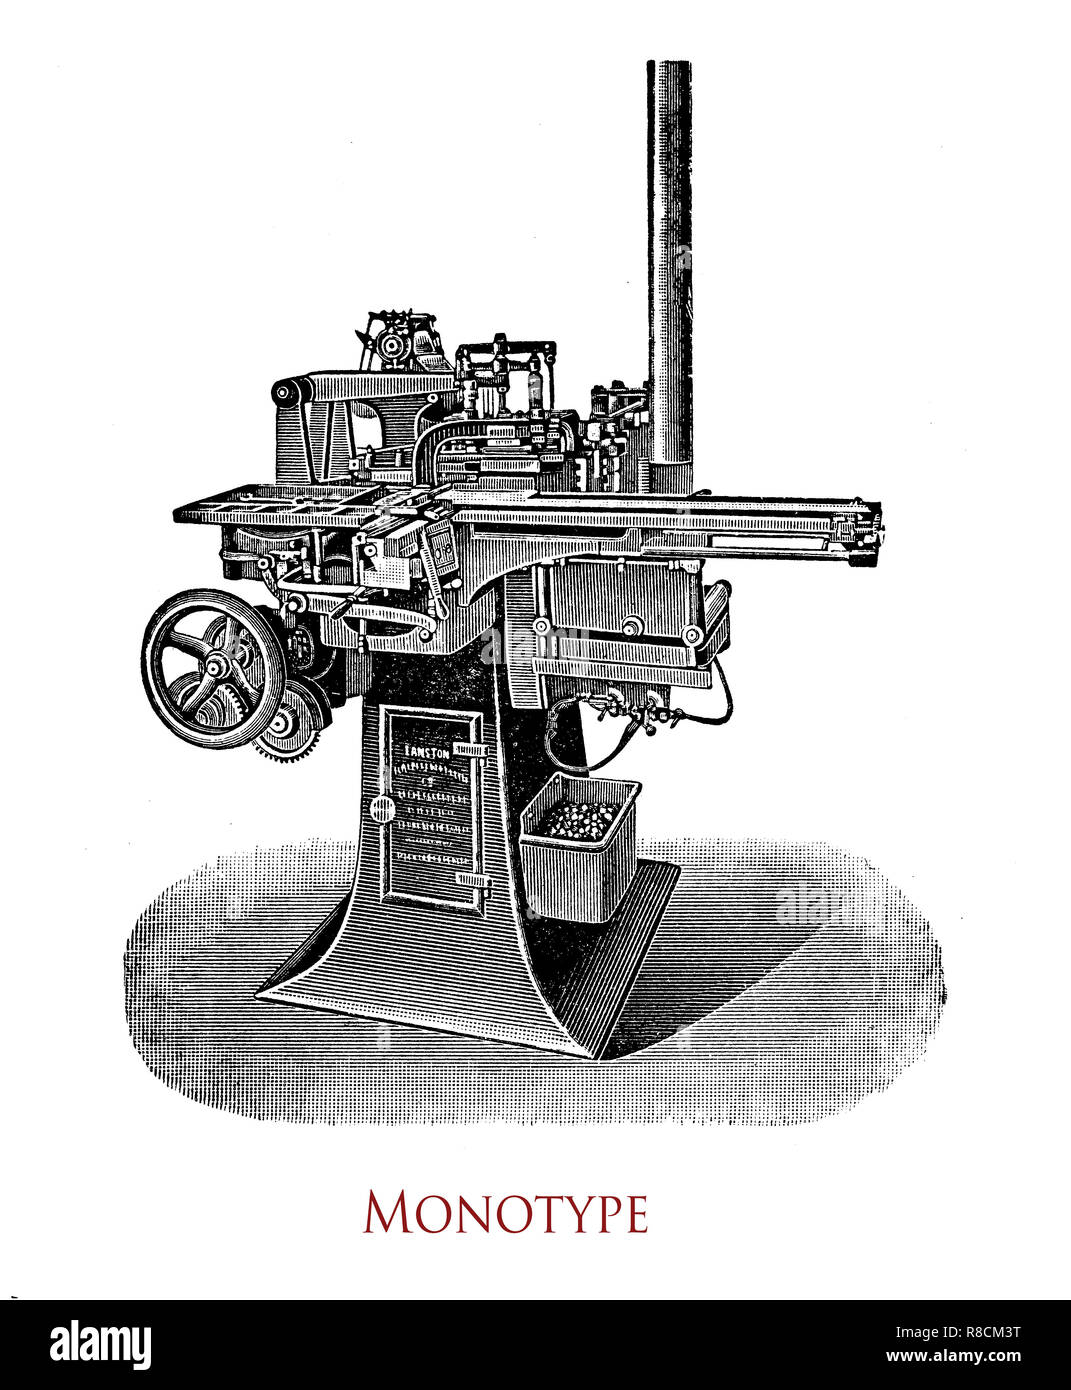 Sheet Fed Printing Press Diagram On Of Offset Old Hand Stock Photos Vintage Engraving Monotype Machine Caster It Casts Individual Letters Which Are Assembled